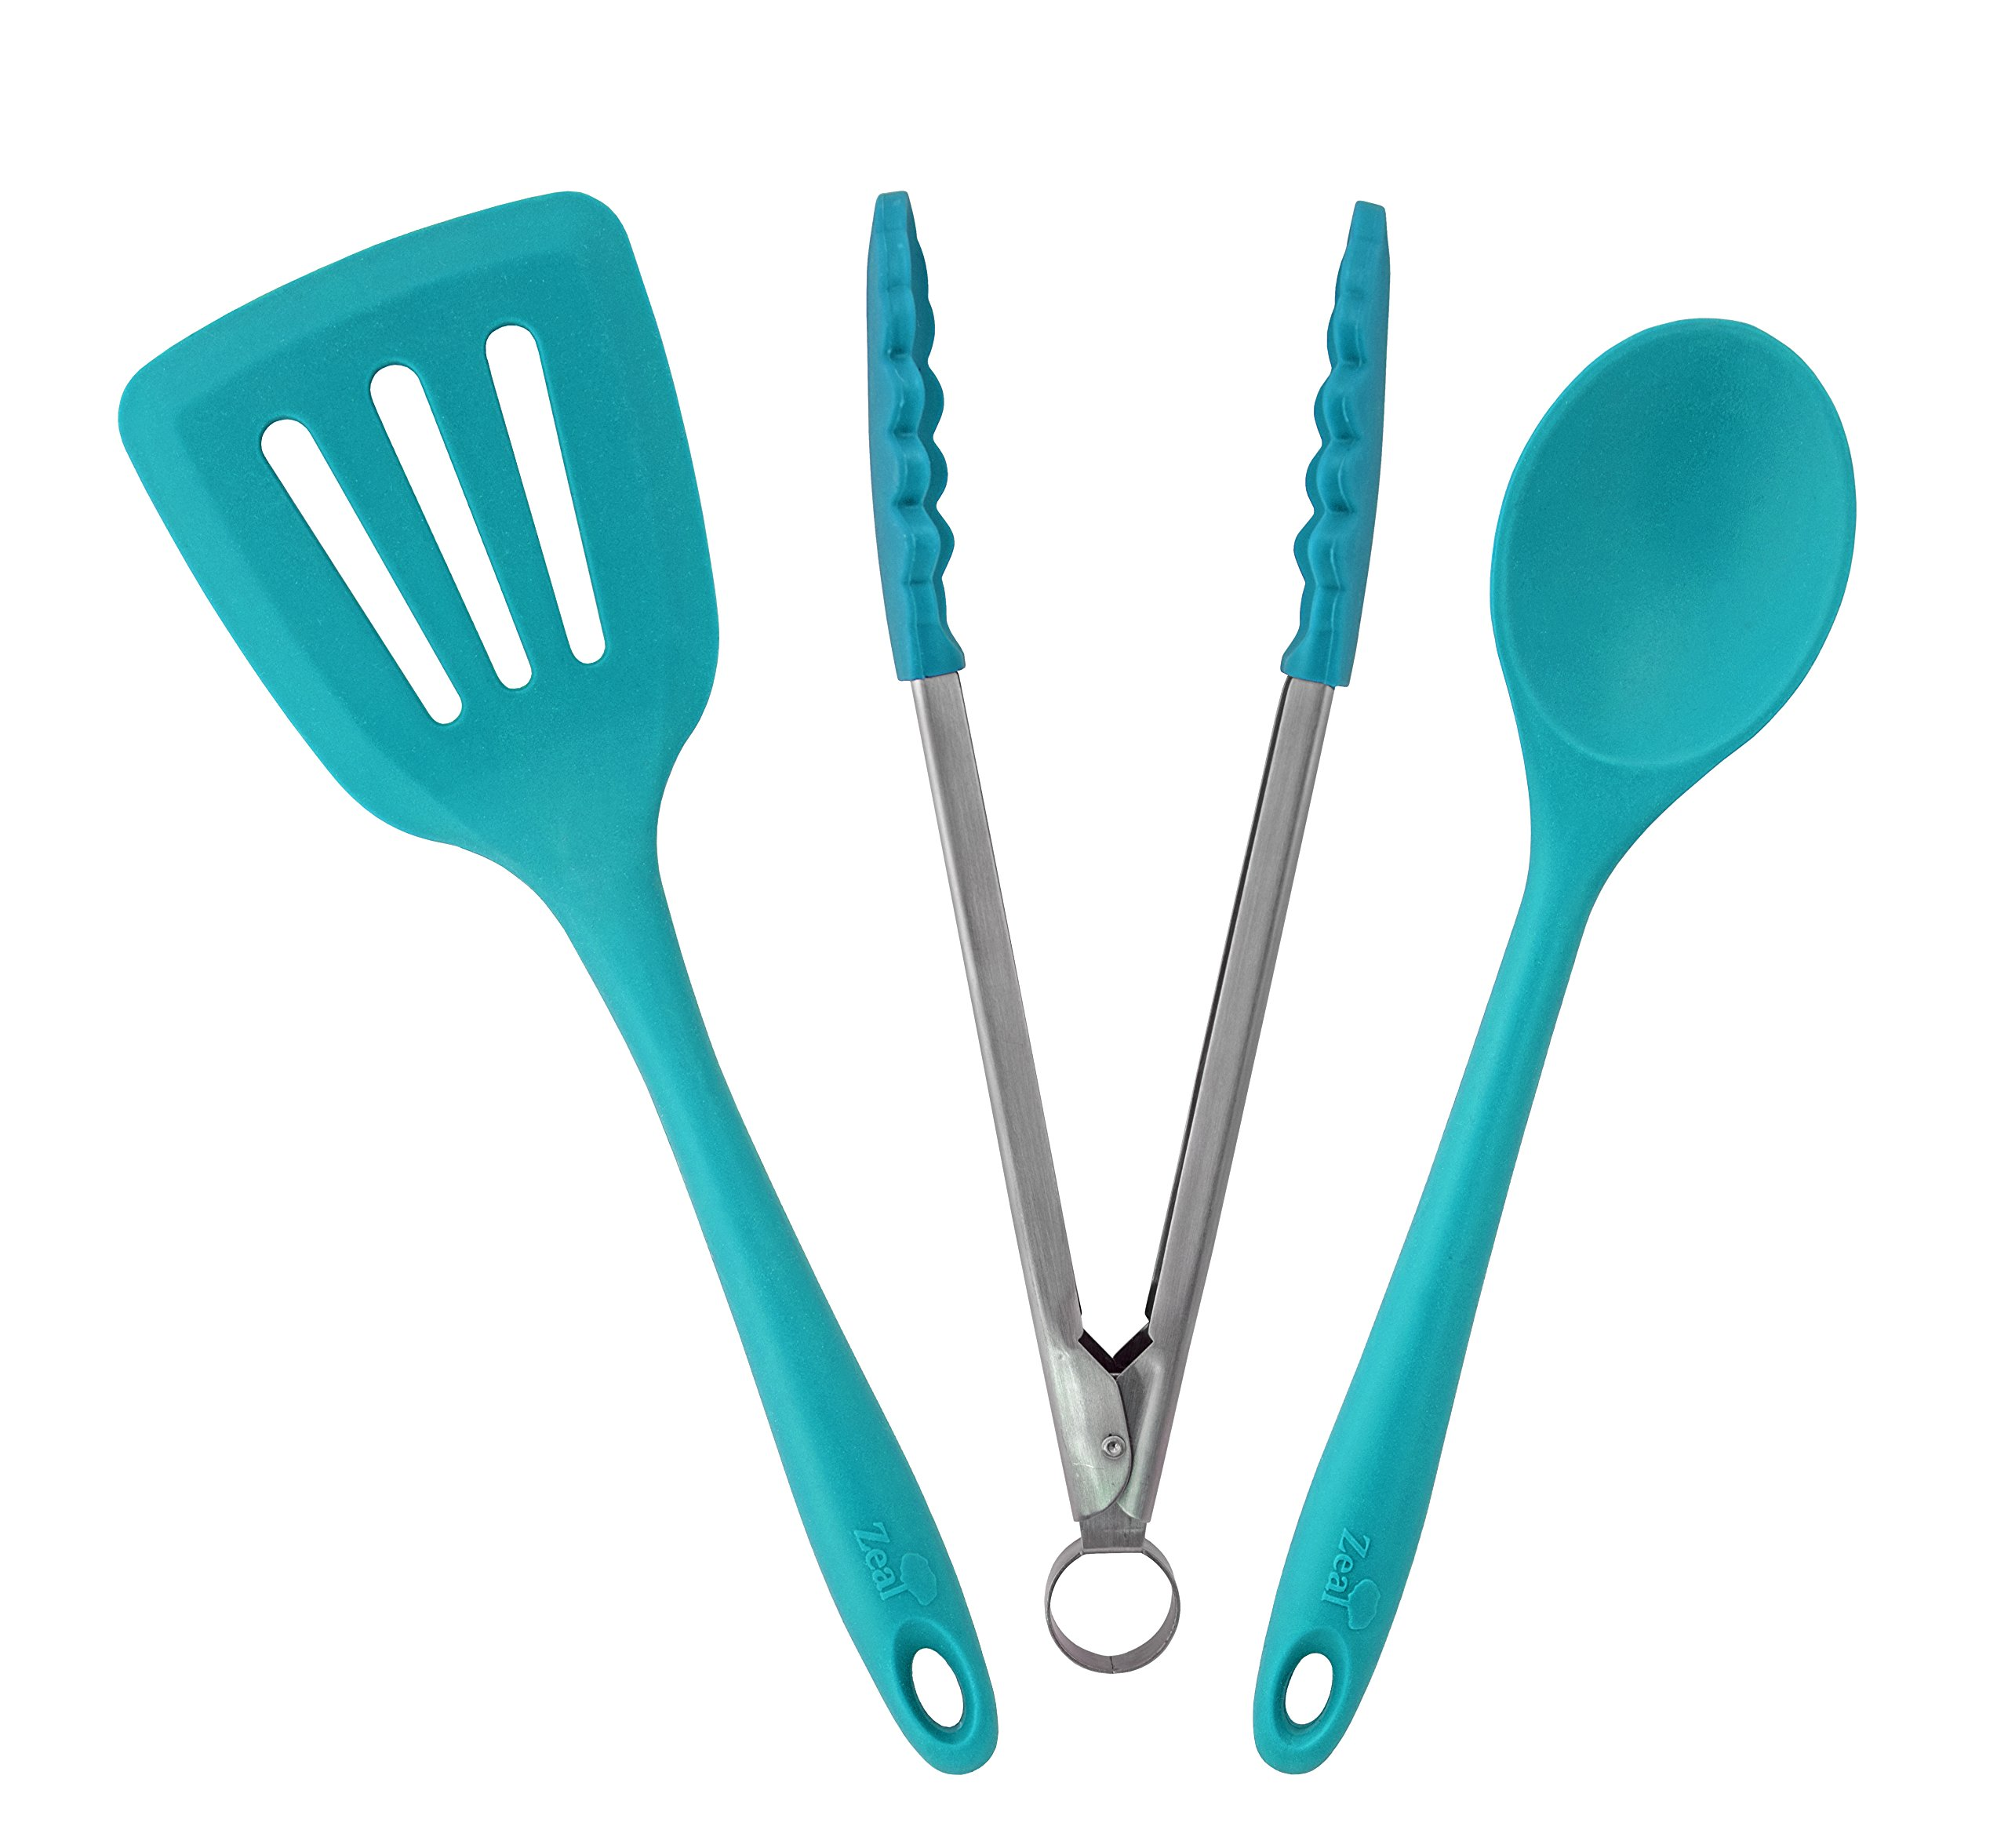 ZEAL 3 piece Kitchen Utensil Set - Cooks Spoon, Turner and Tong - European Grade Pure Silicone, Heat Resistant to 482F (Blue)